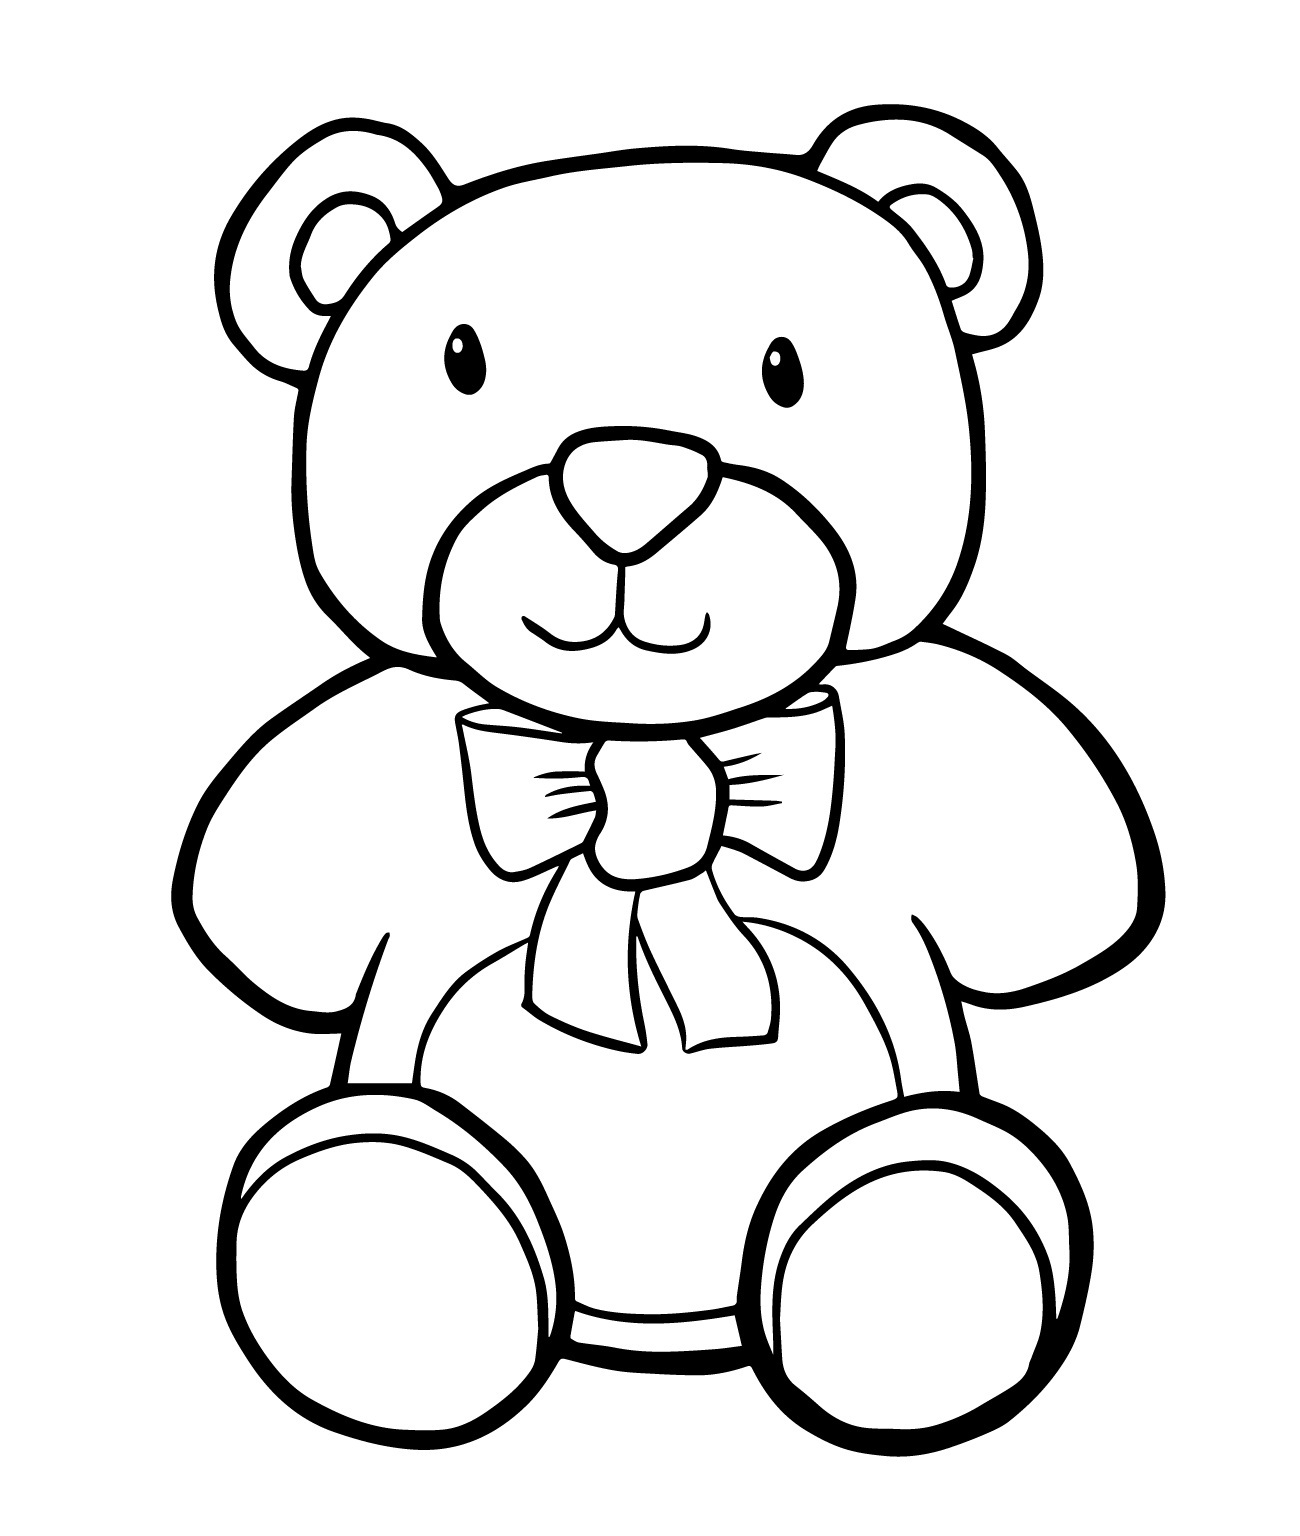 teddy coloring pages free printable teddy bear coloring pages for kids